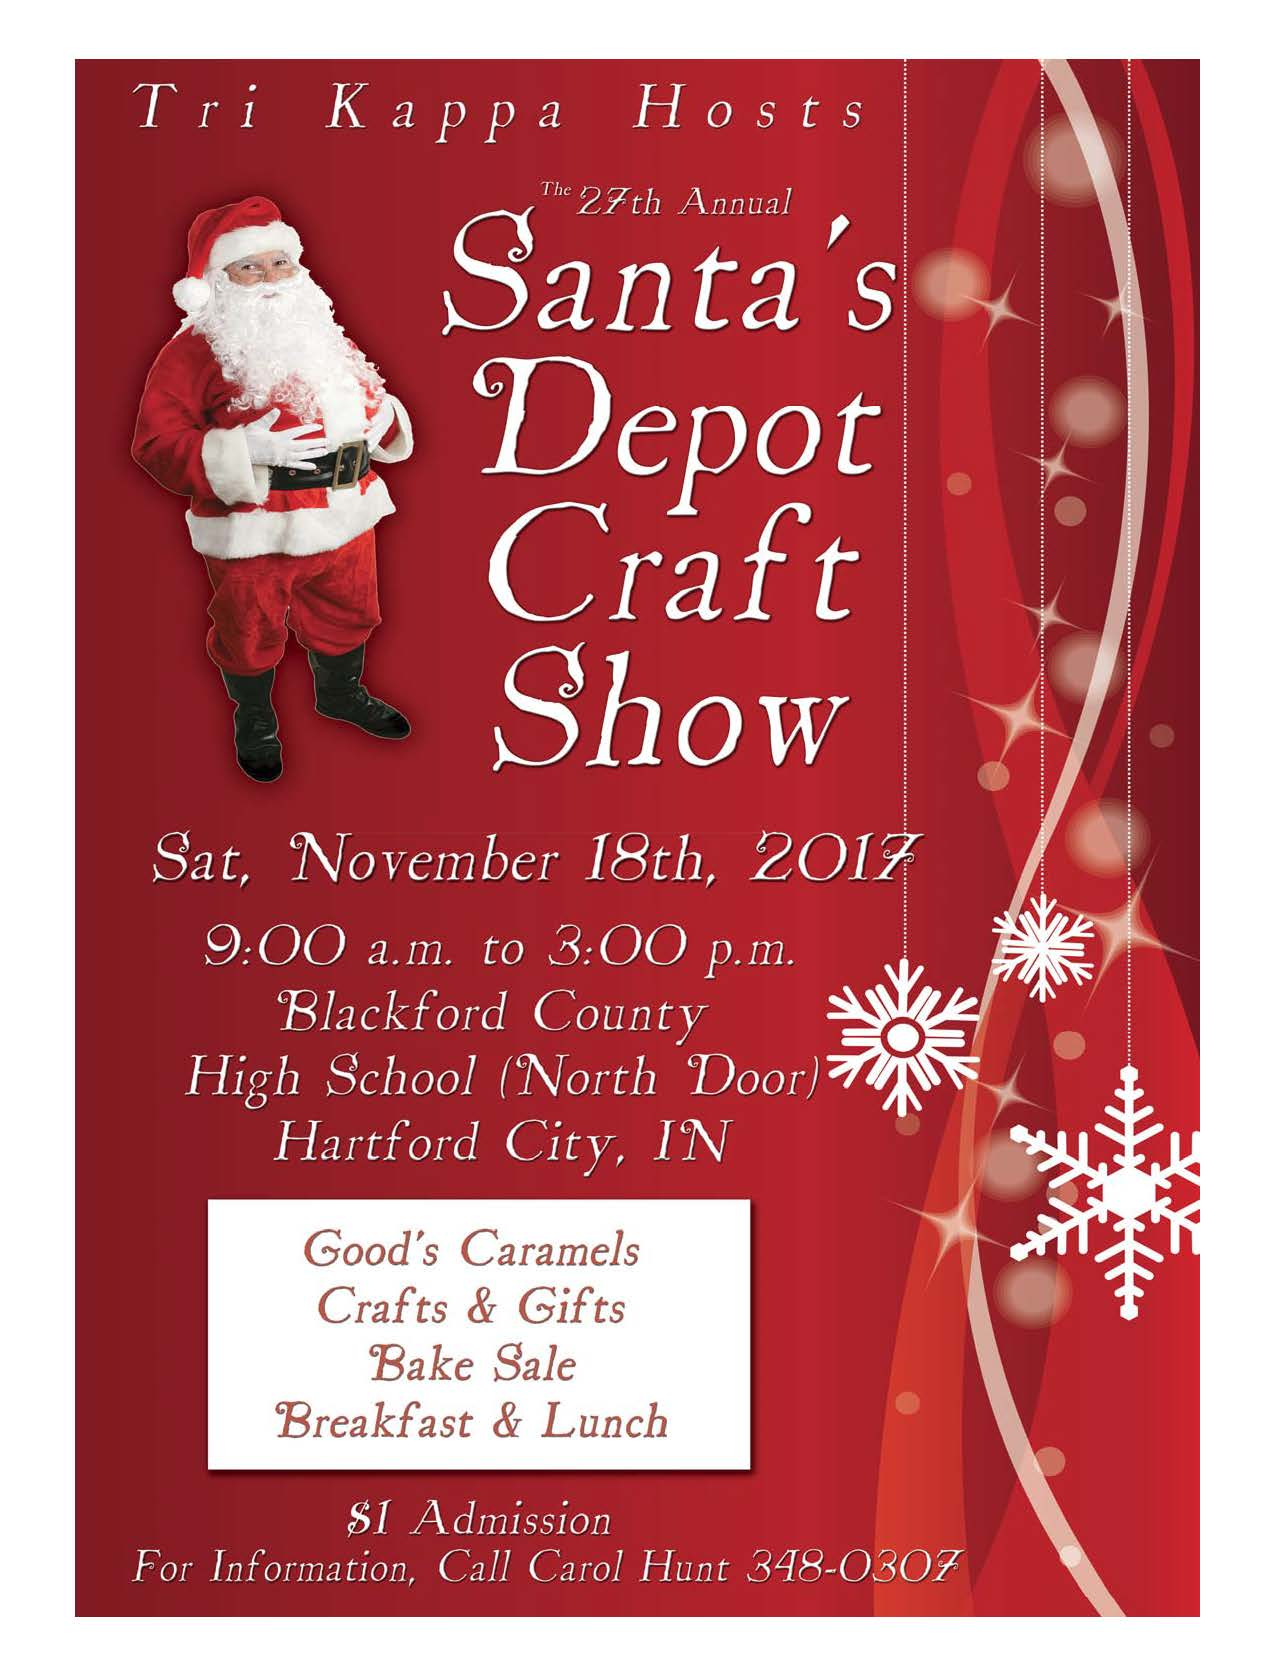 Hartford Citys 27th Annual Santas Depot Craft Show Kappa Kappa